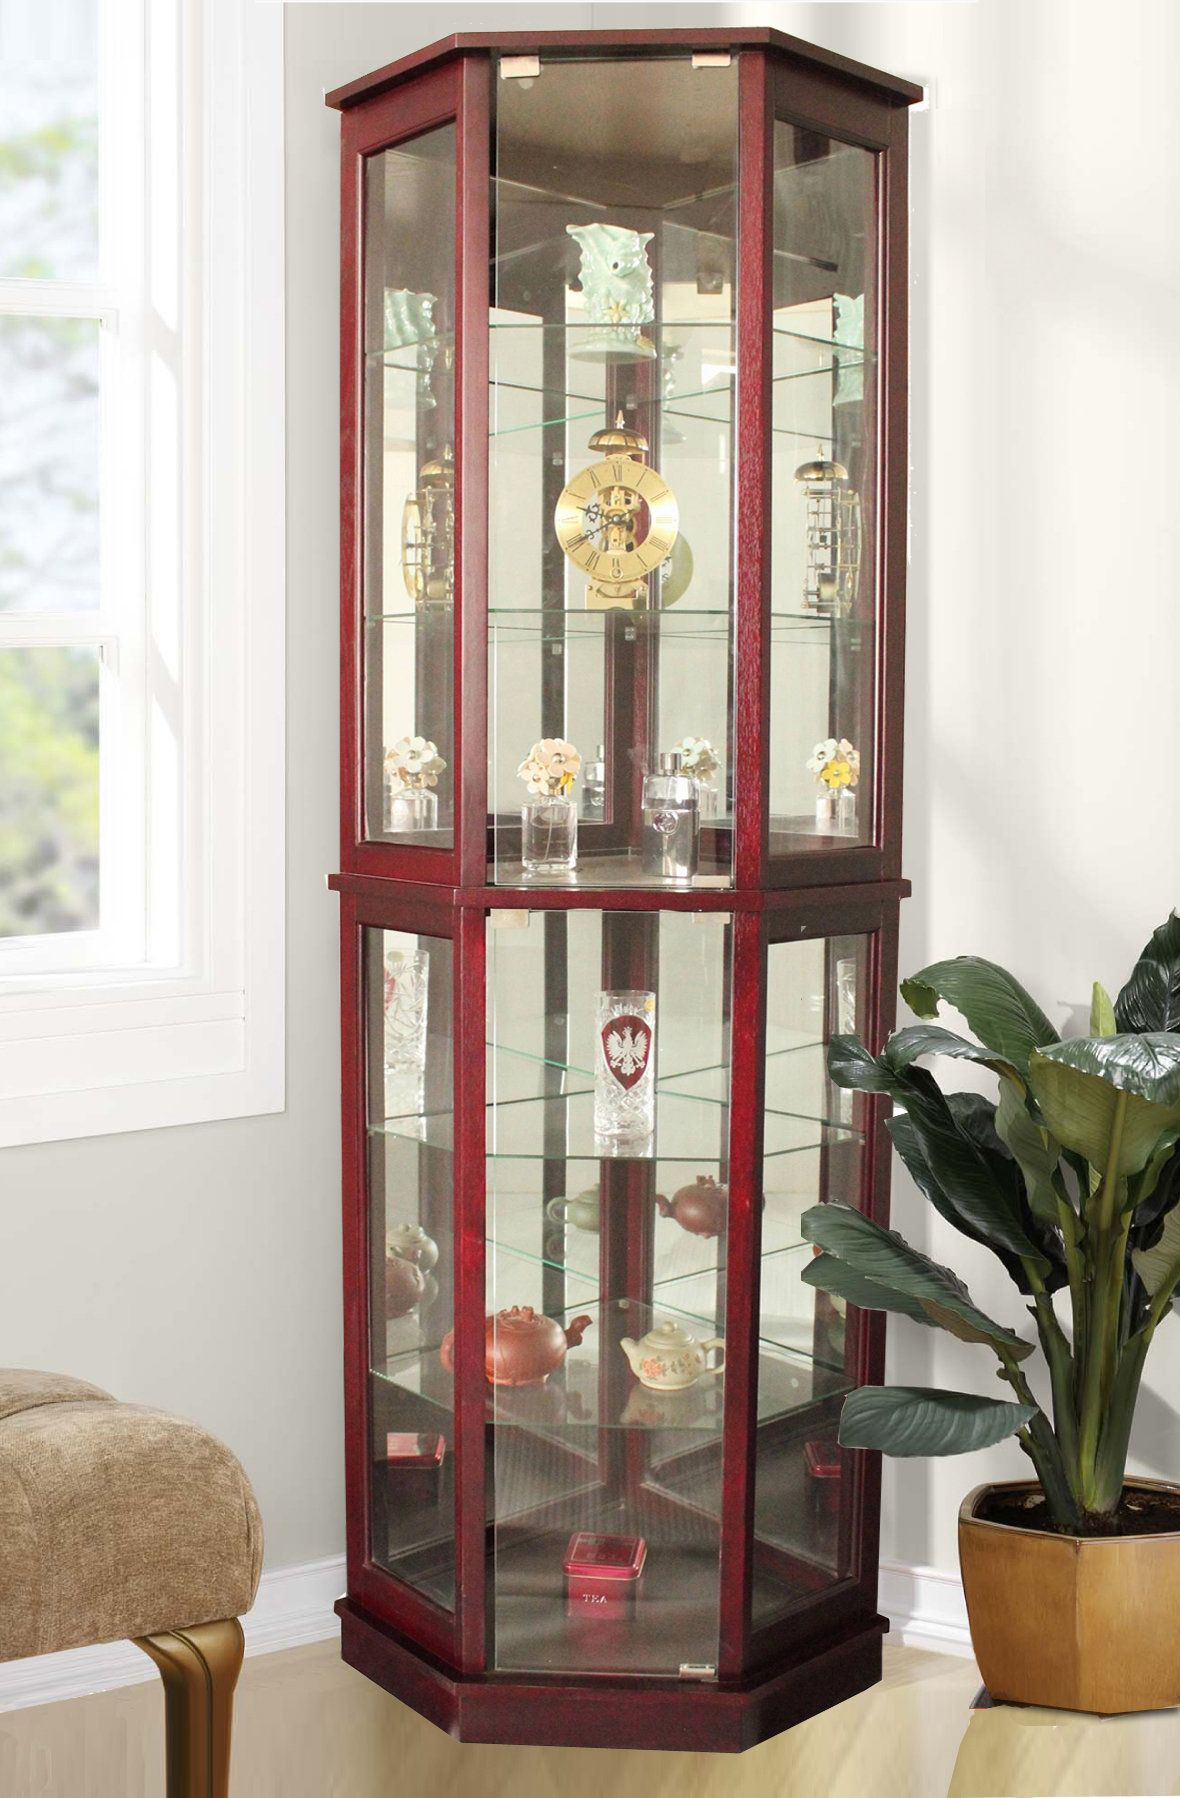 Biali Corner Curio Cabinet Glass Curio Cabinets Crockery Unit Design Glass Cabinets Display